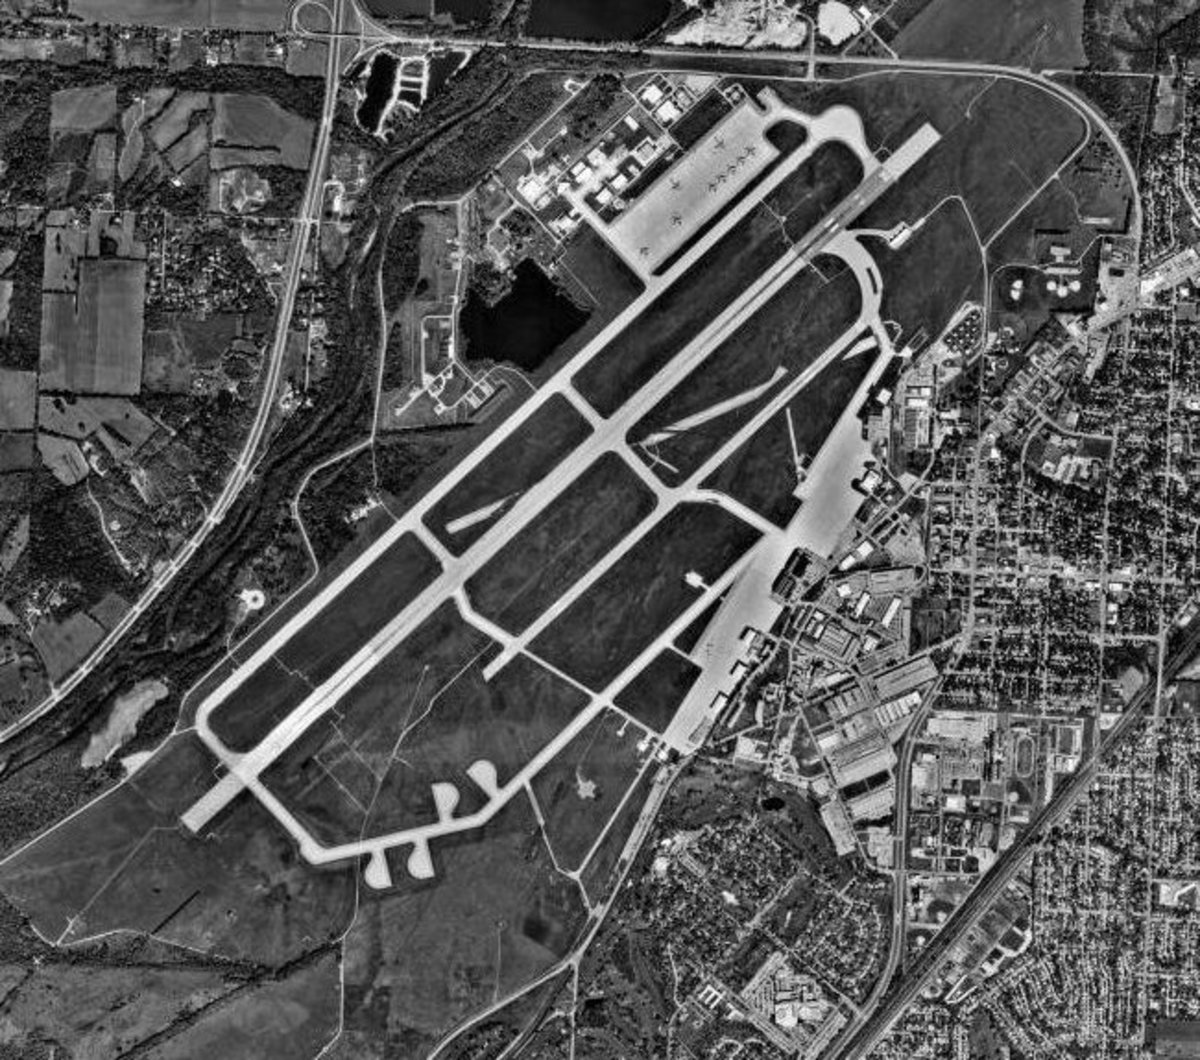 Wright-Patterson Air Force Base, Hangar 18